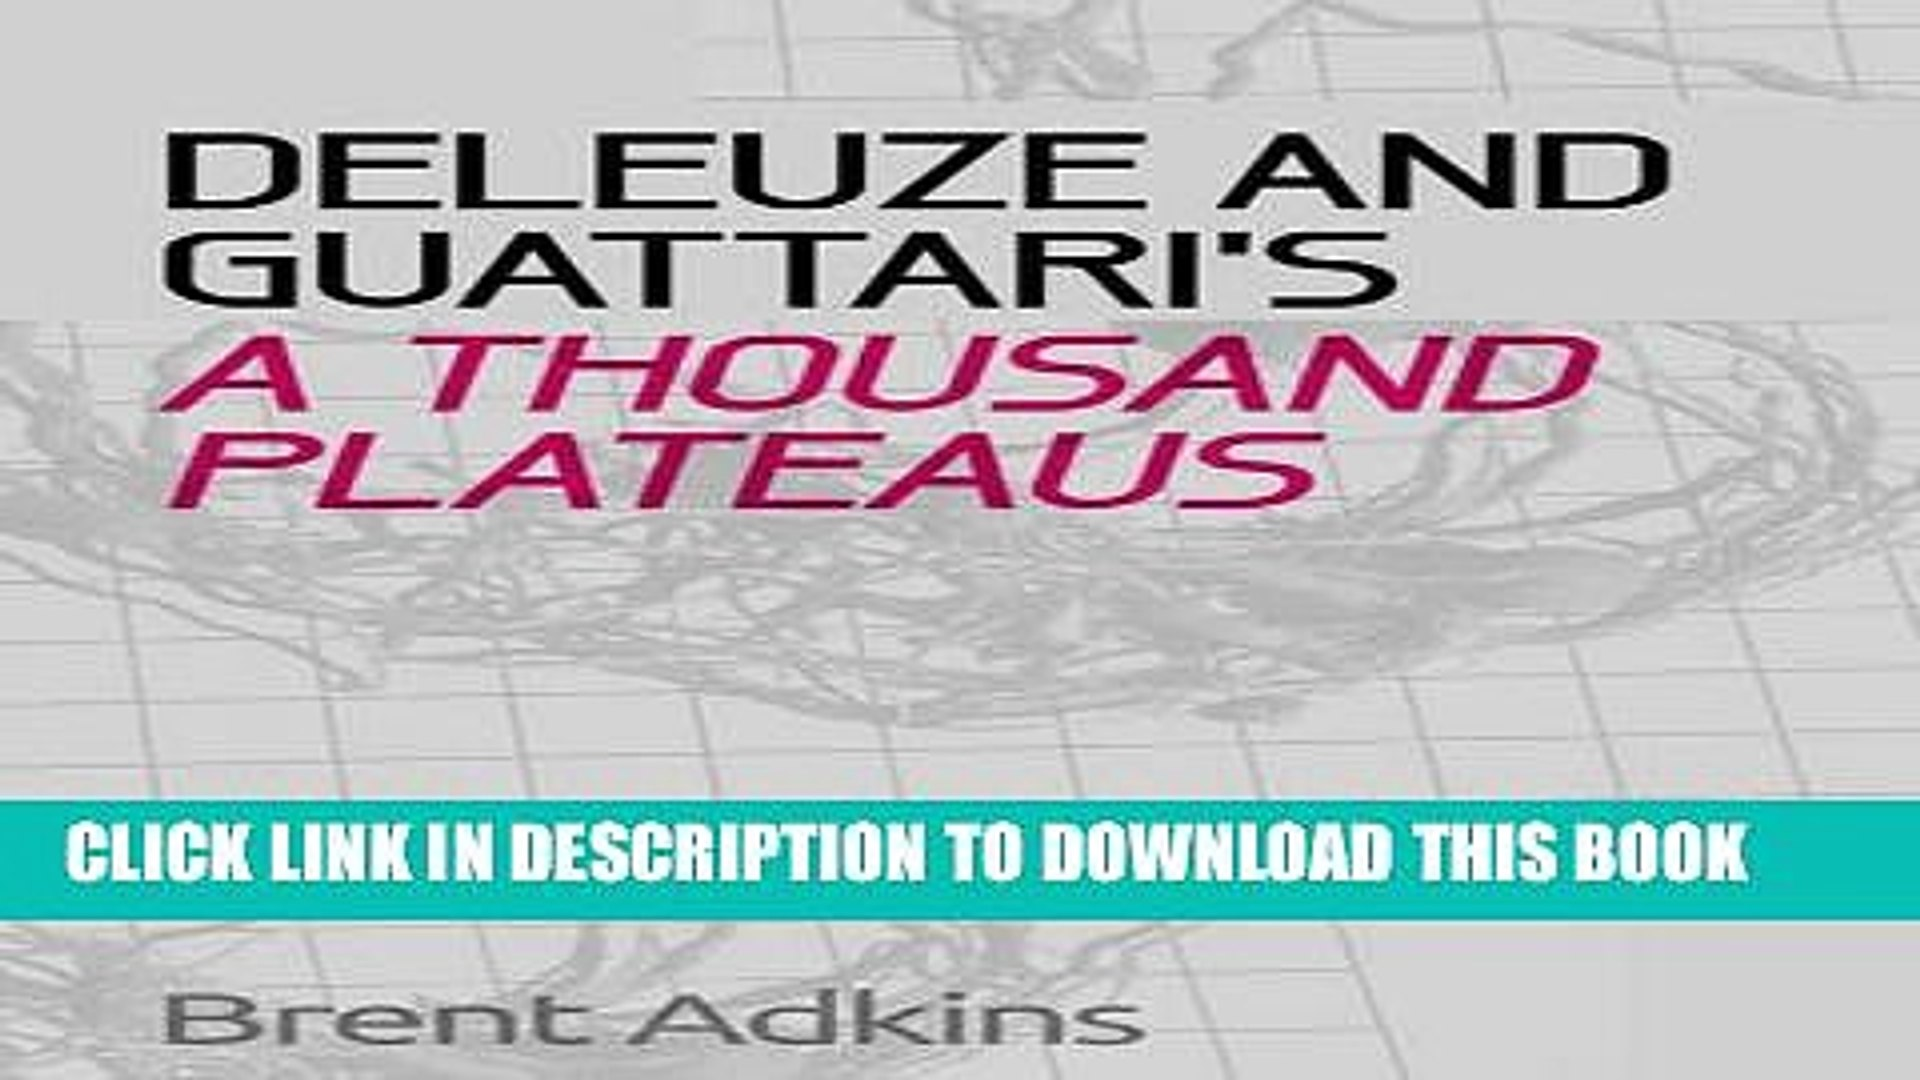 [PDF] Deleuze and Guattari s A Thousand Plateaus: A Critical Introduction and Guide Popular